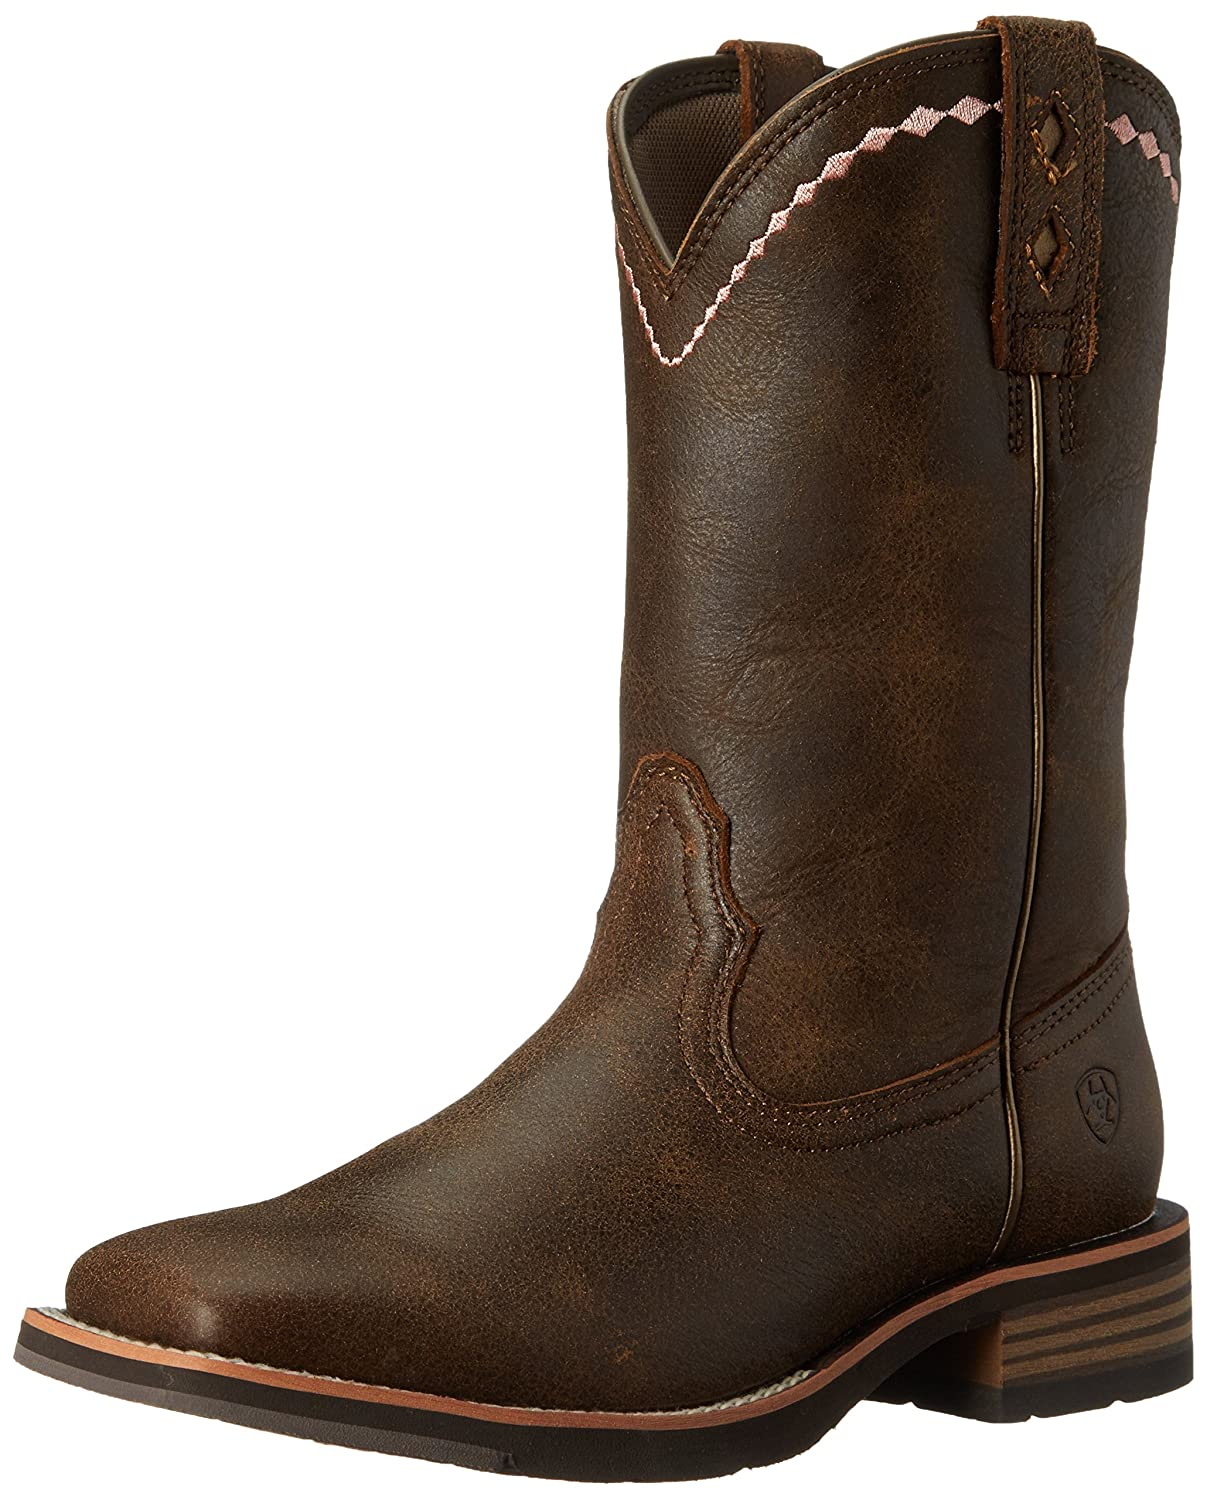 Ariat Women's Unbridled Roper Western Cowboy Boot B00NUIE550 8.5 B(M) US|Vintage Bomber